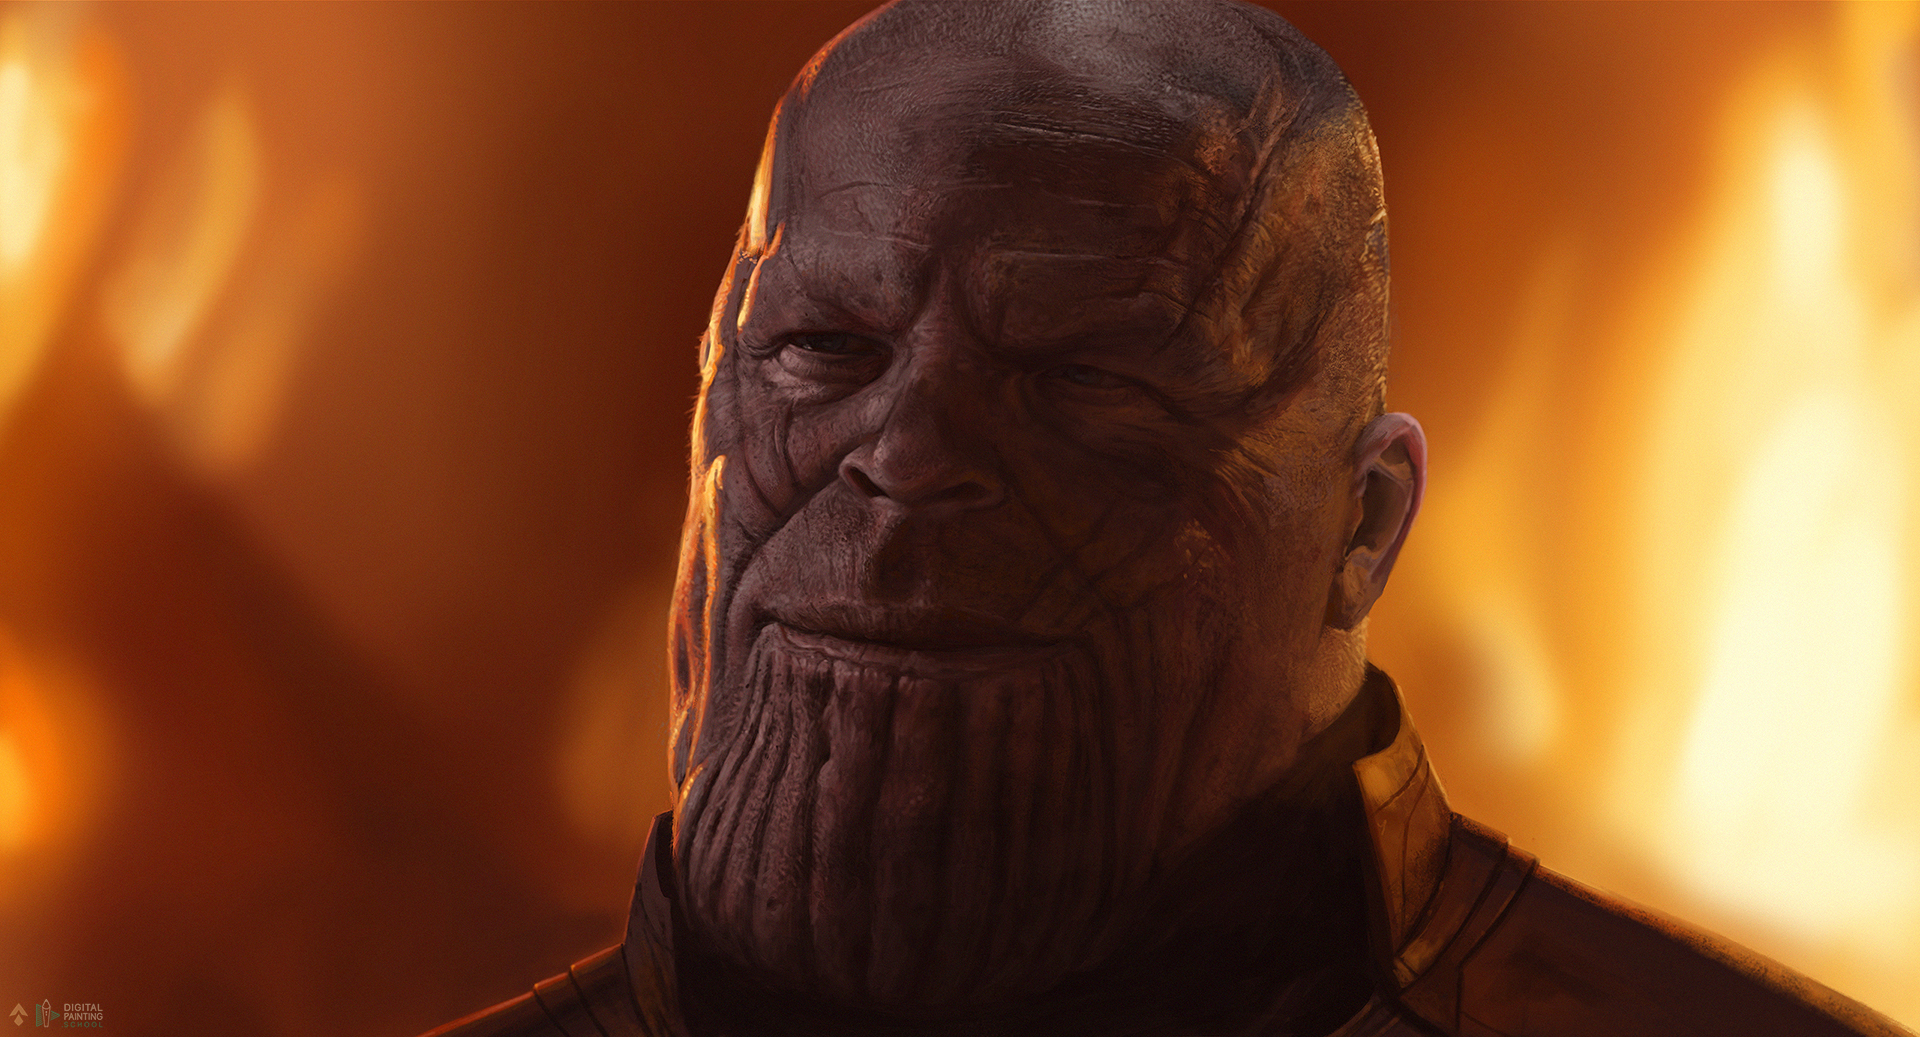 Thanos speed painting